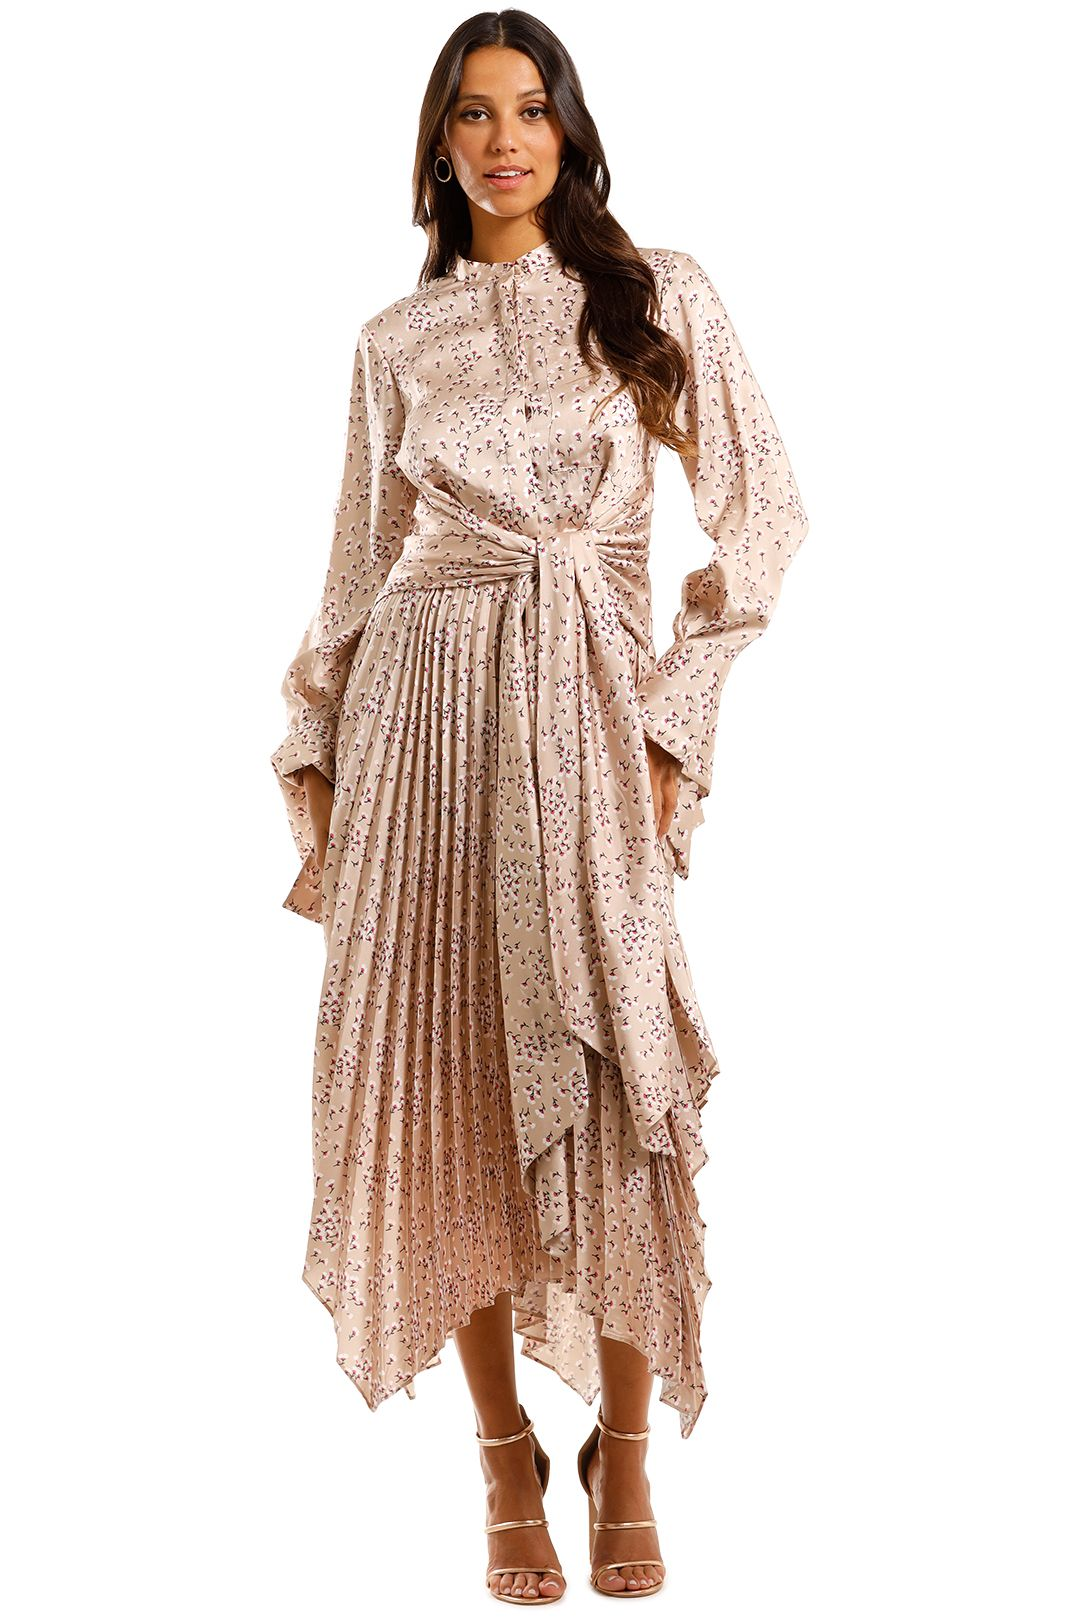 Acler Chase Dress Asymmetric Skirt Abstract Print in Cream